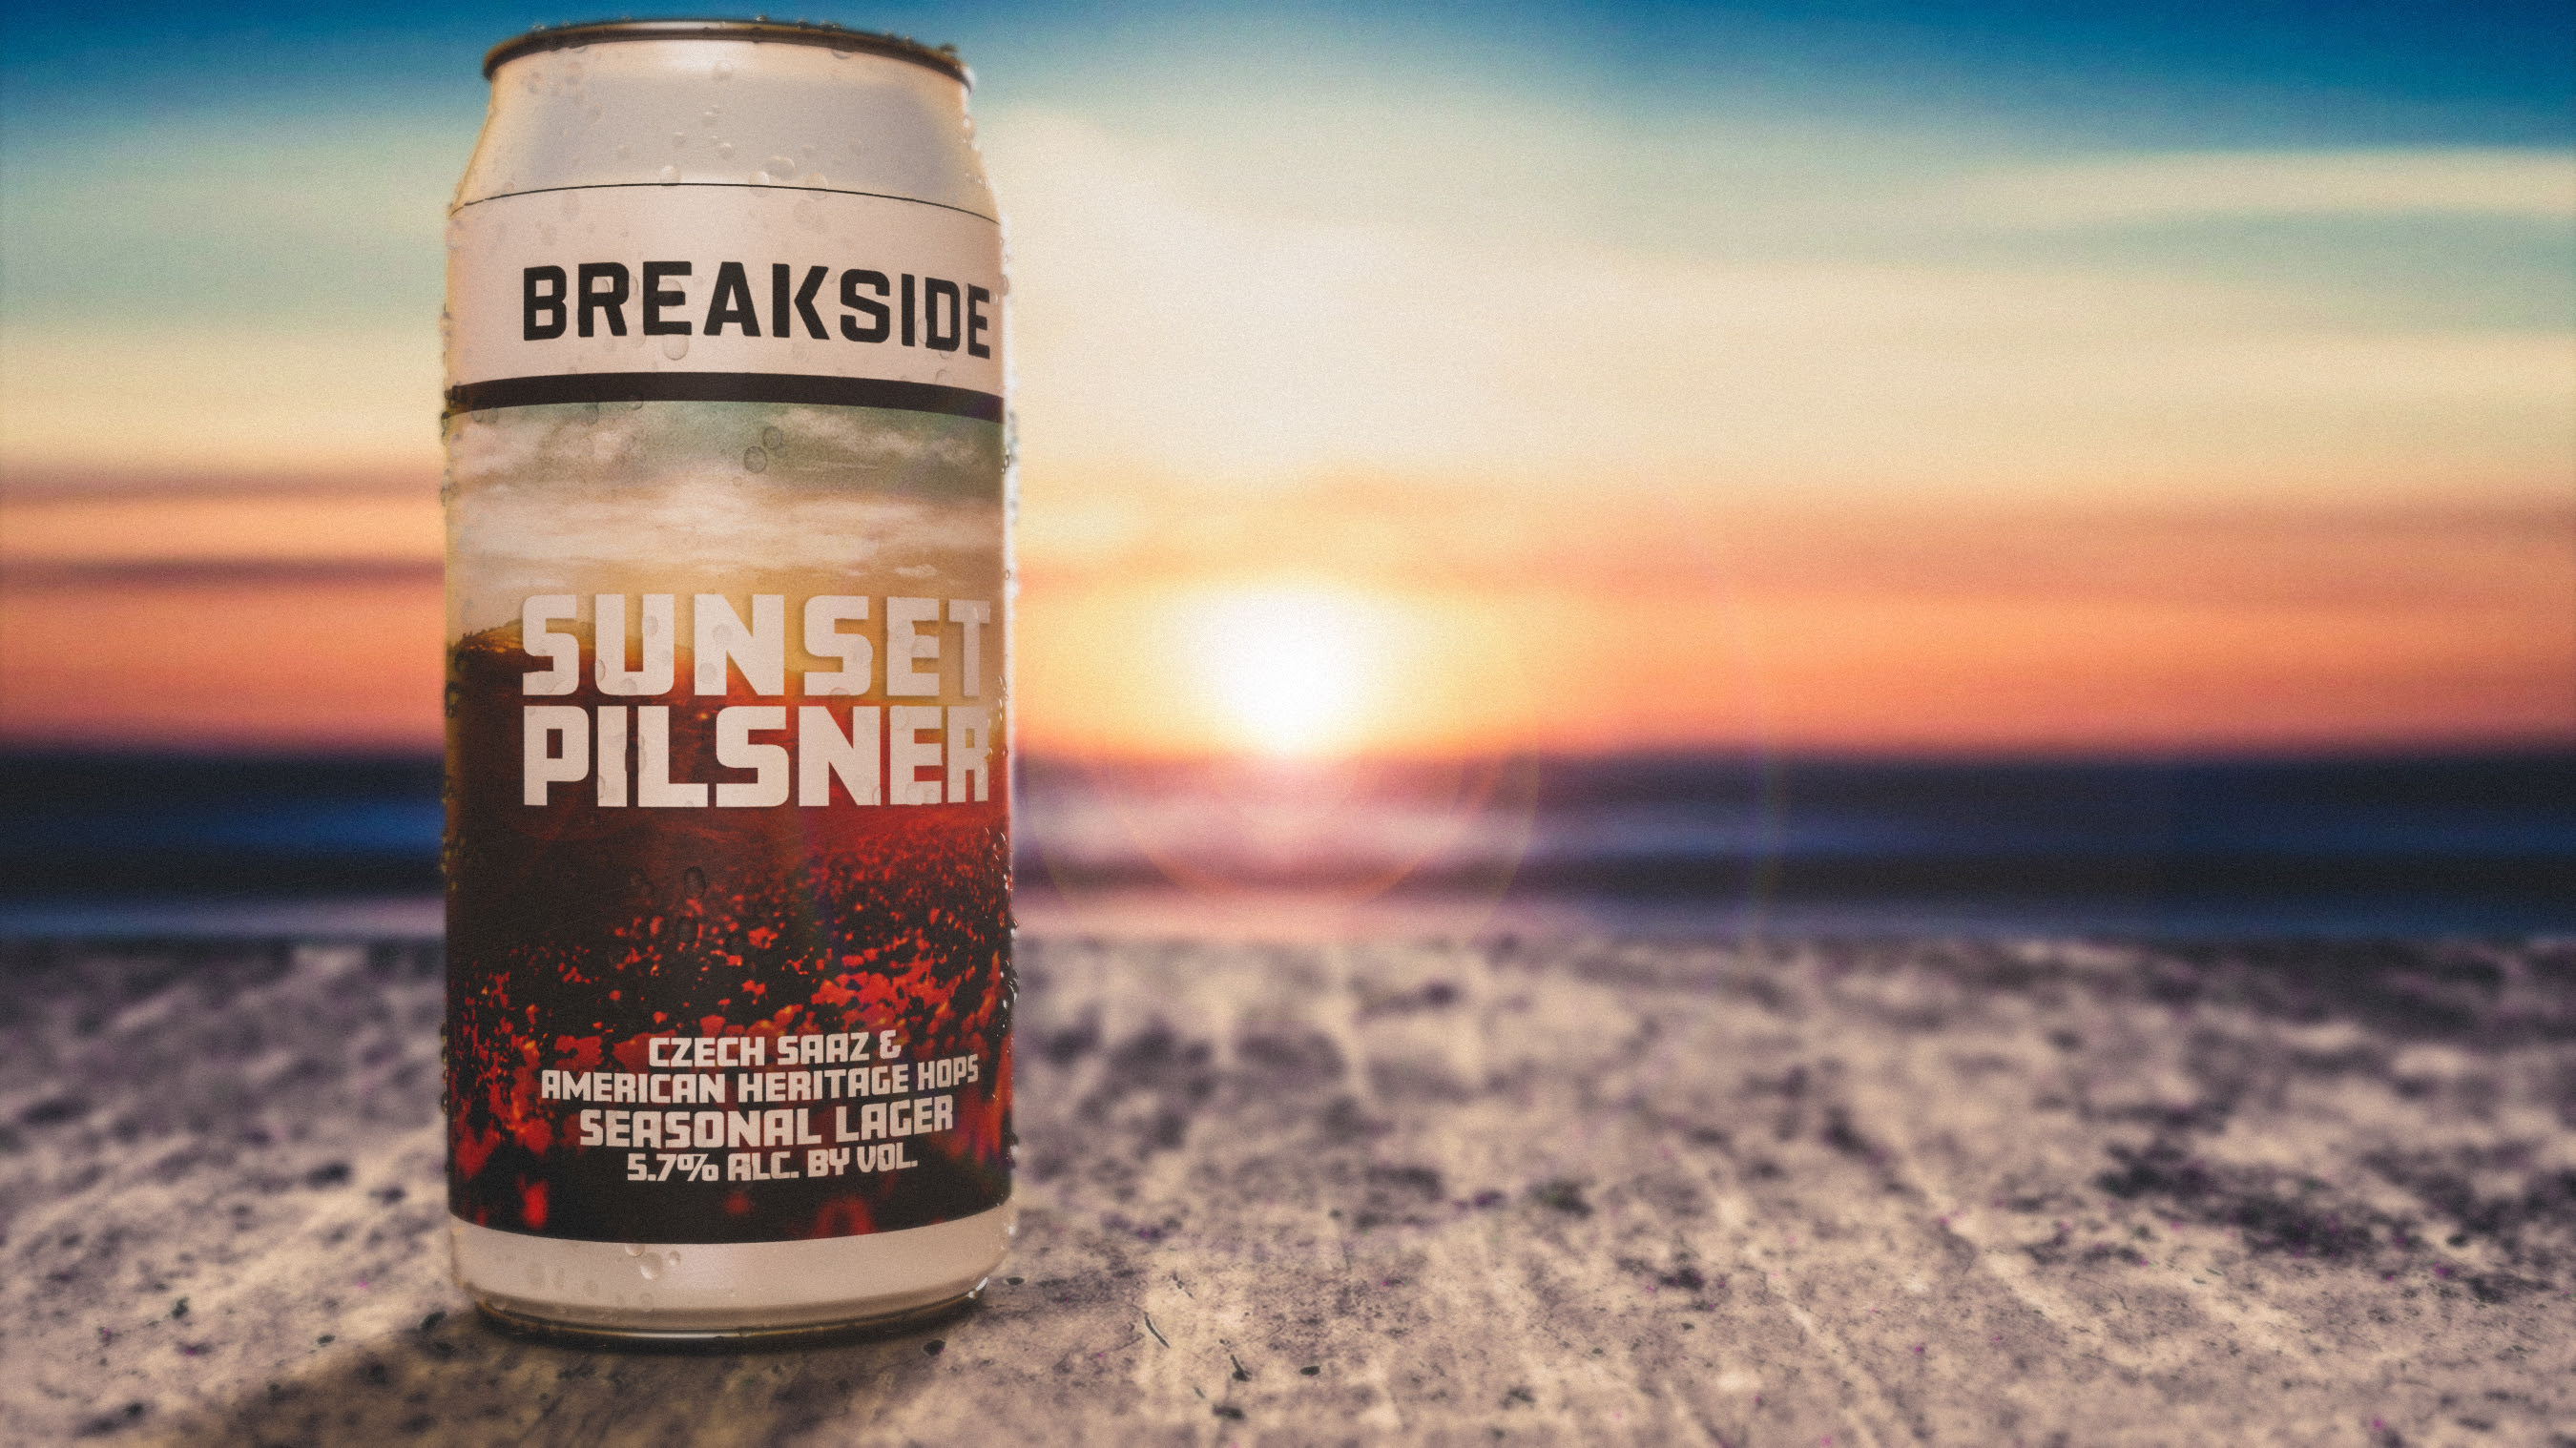 Breakside Brewery Sunset Pilsner